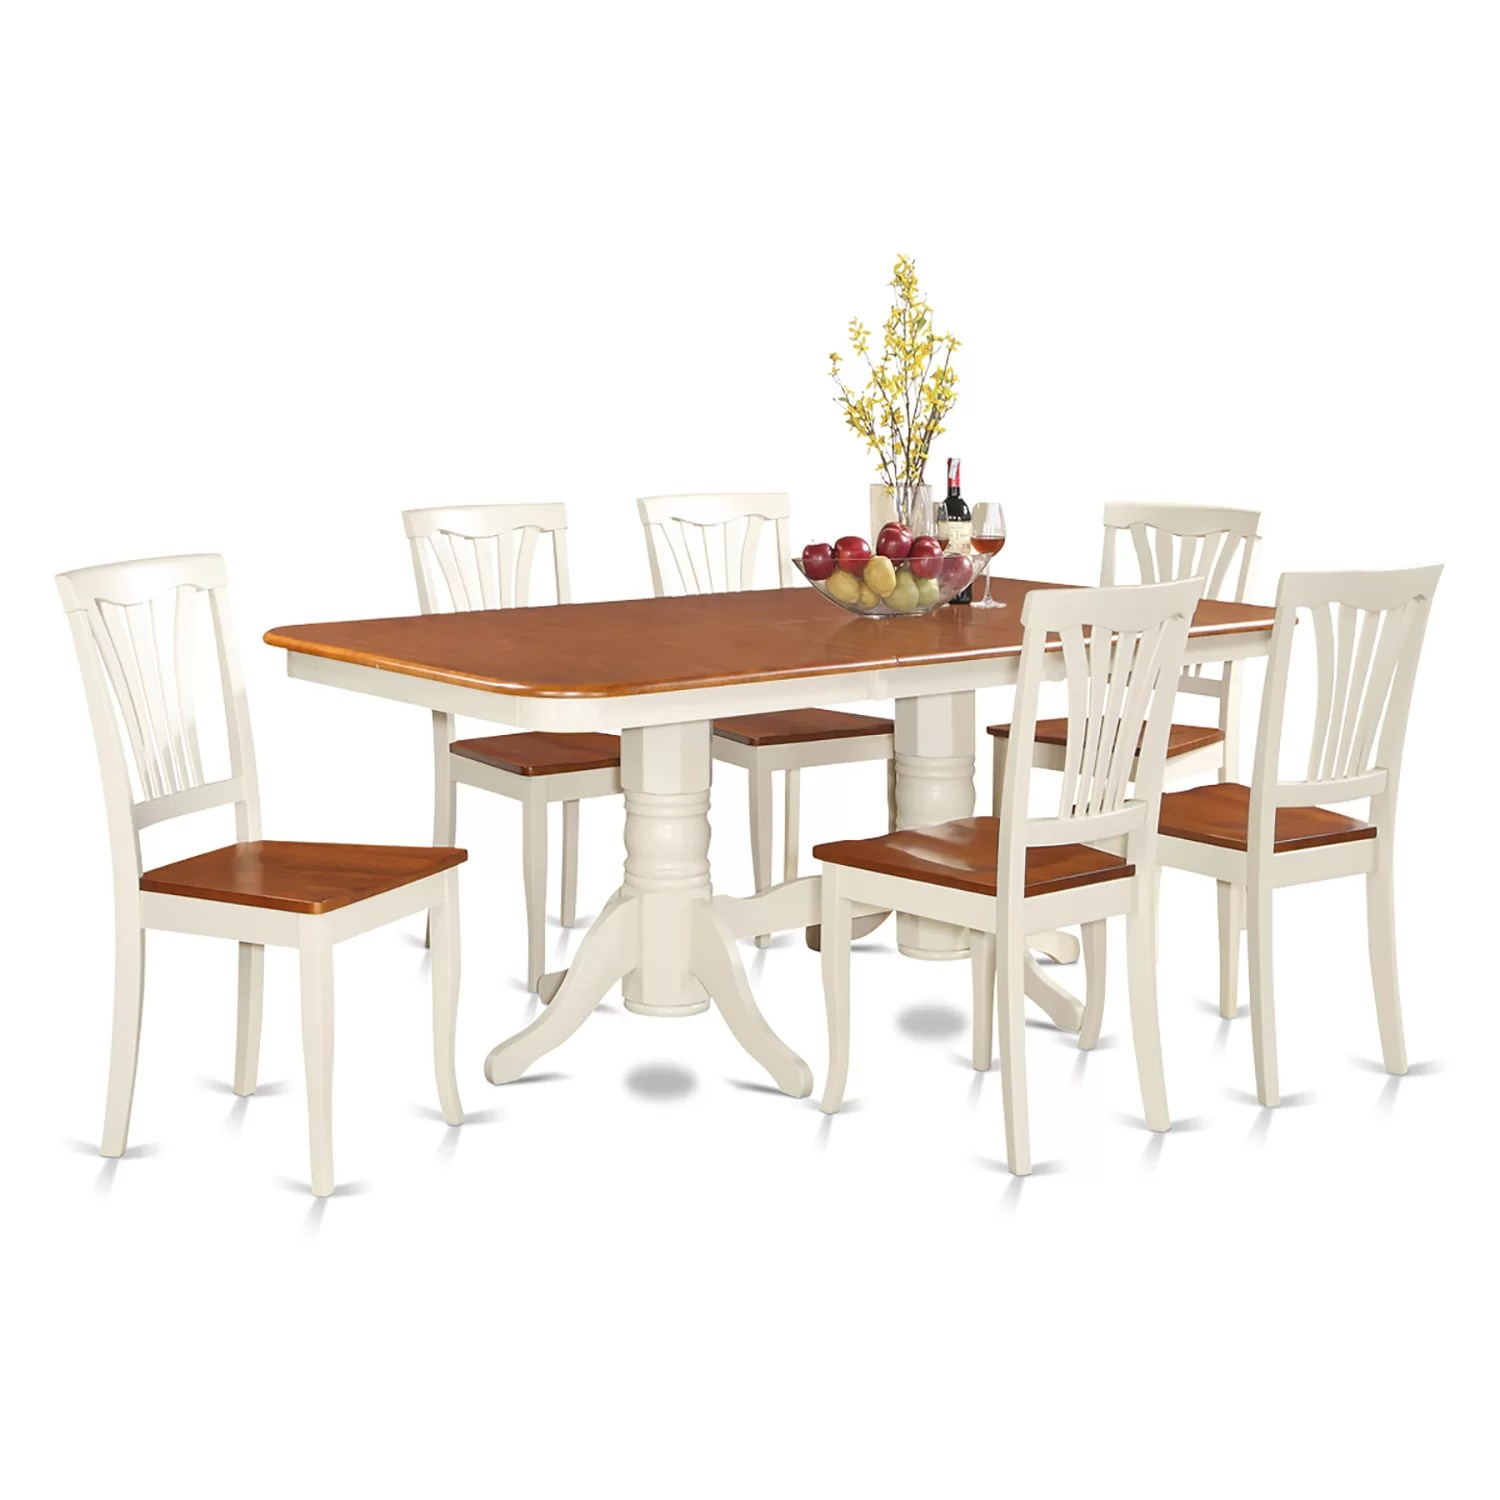 Furniture Room Dining Wayfair Sets